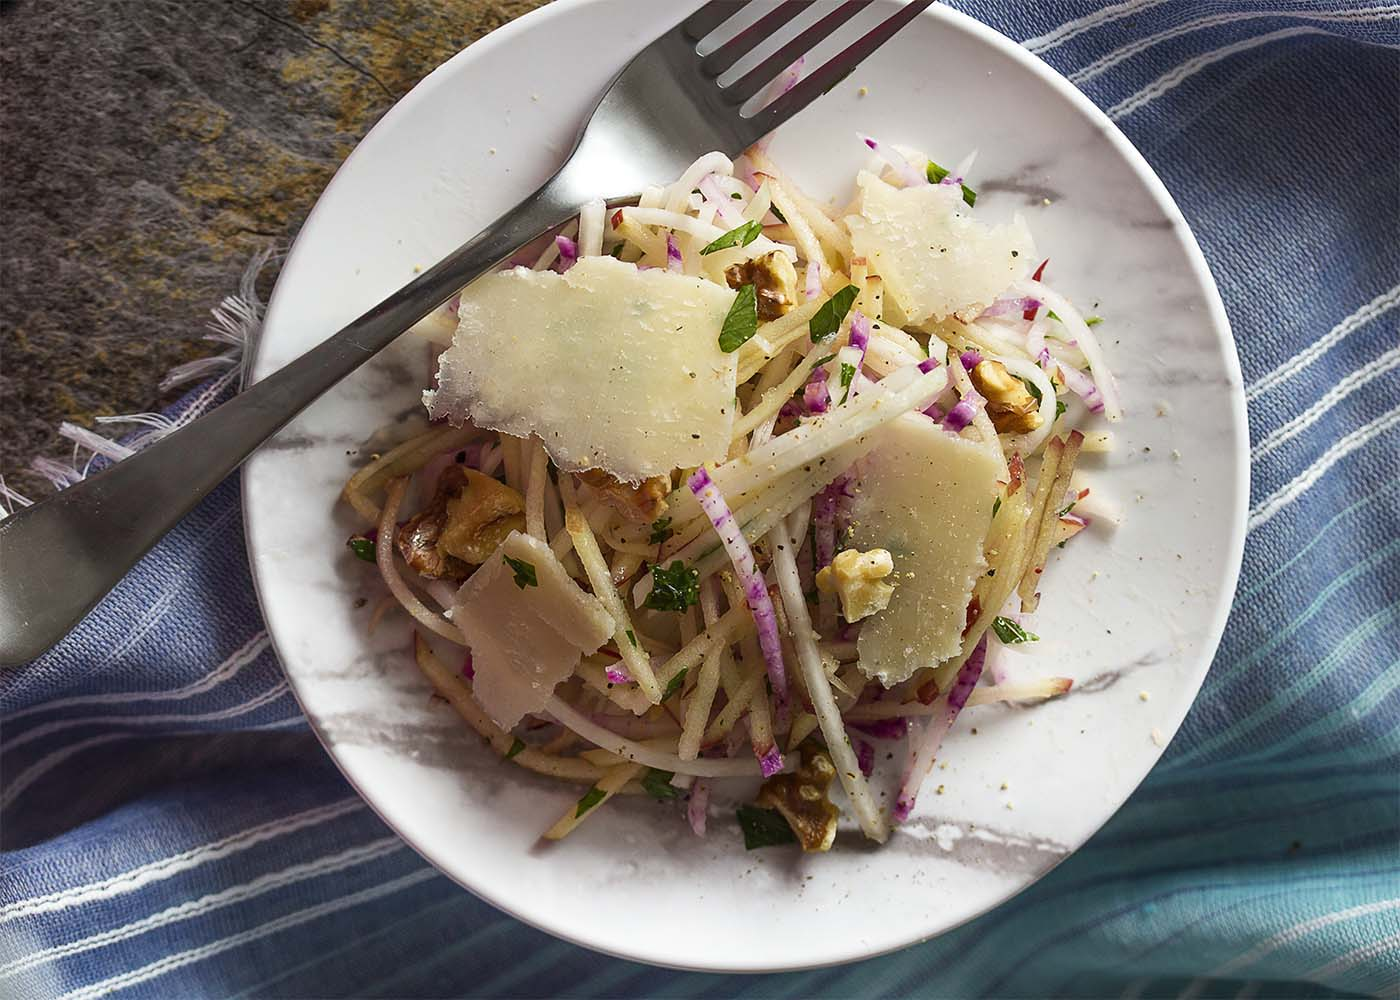 Top down picture of a small plate of kohlrabi slaw.